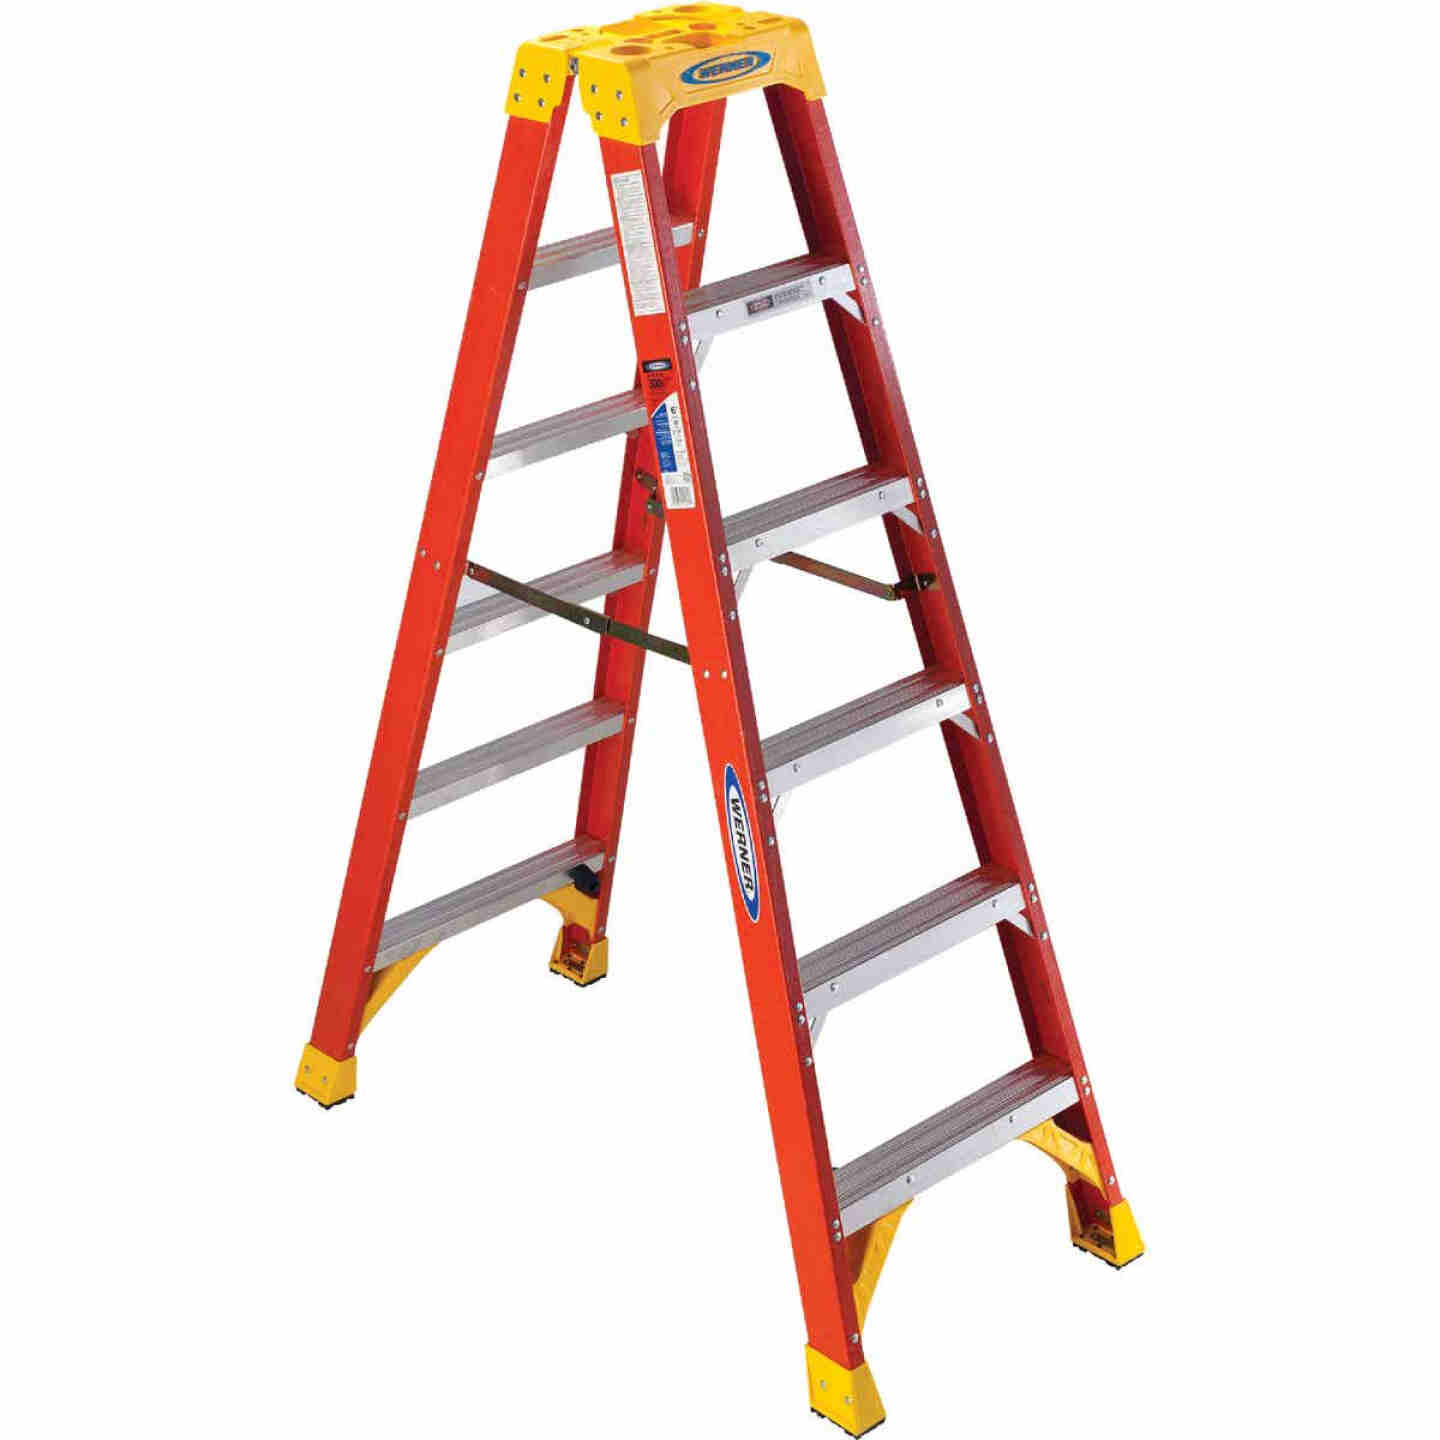 Werner 6 Ft. Fiberglass Twin Step Step Ladder with 300 Lb. Load Capacity Type IA Ladder Rating Image 1